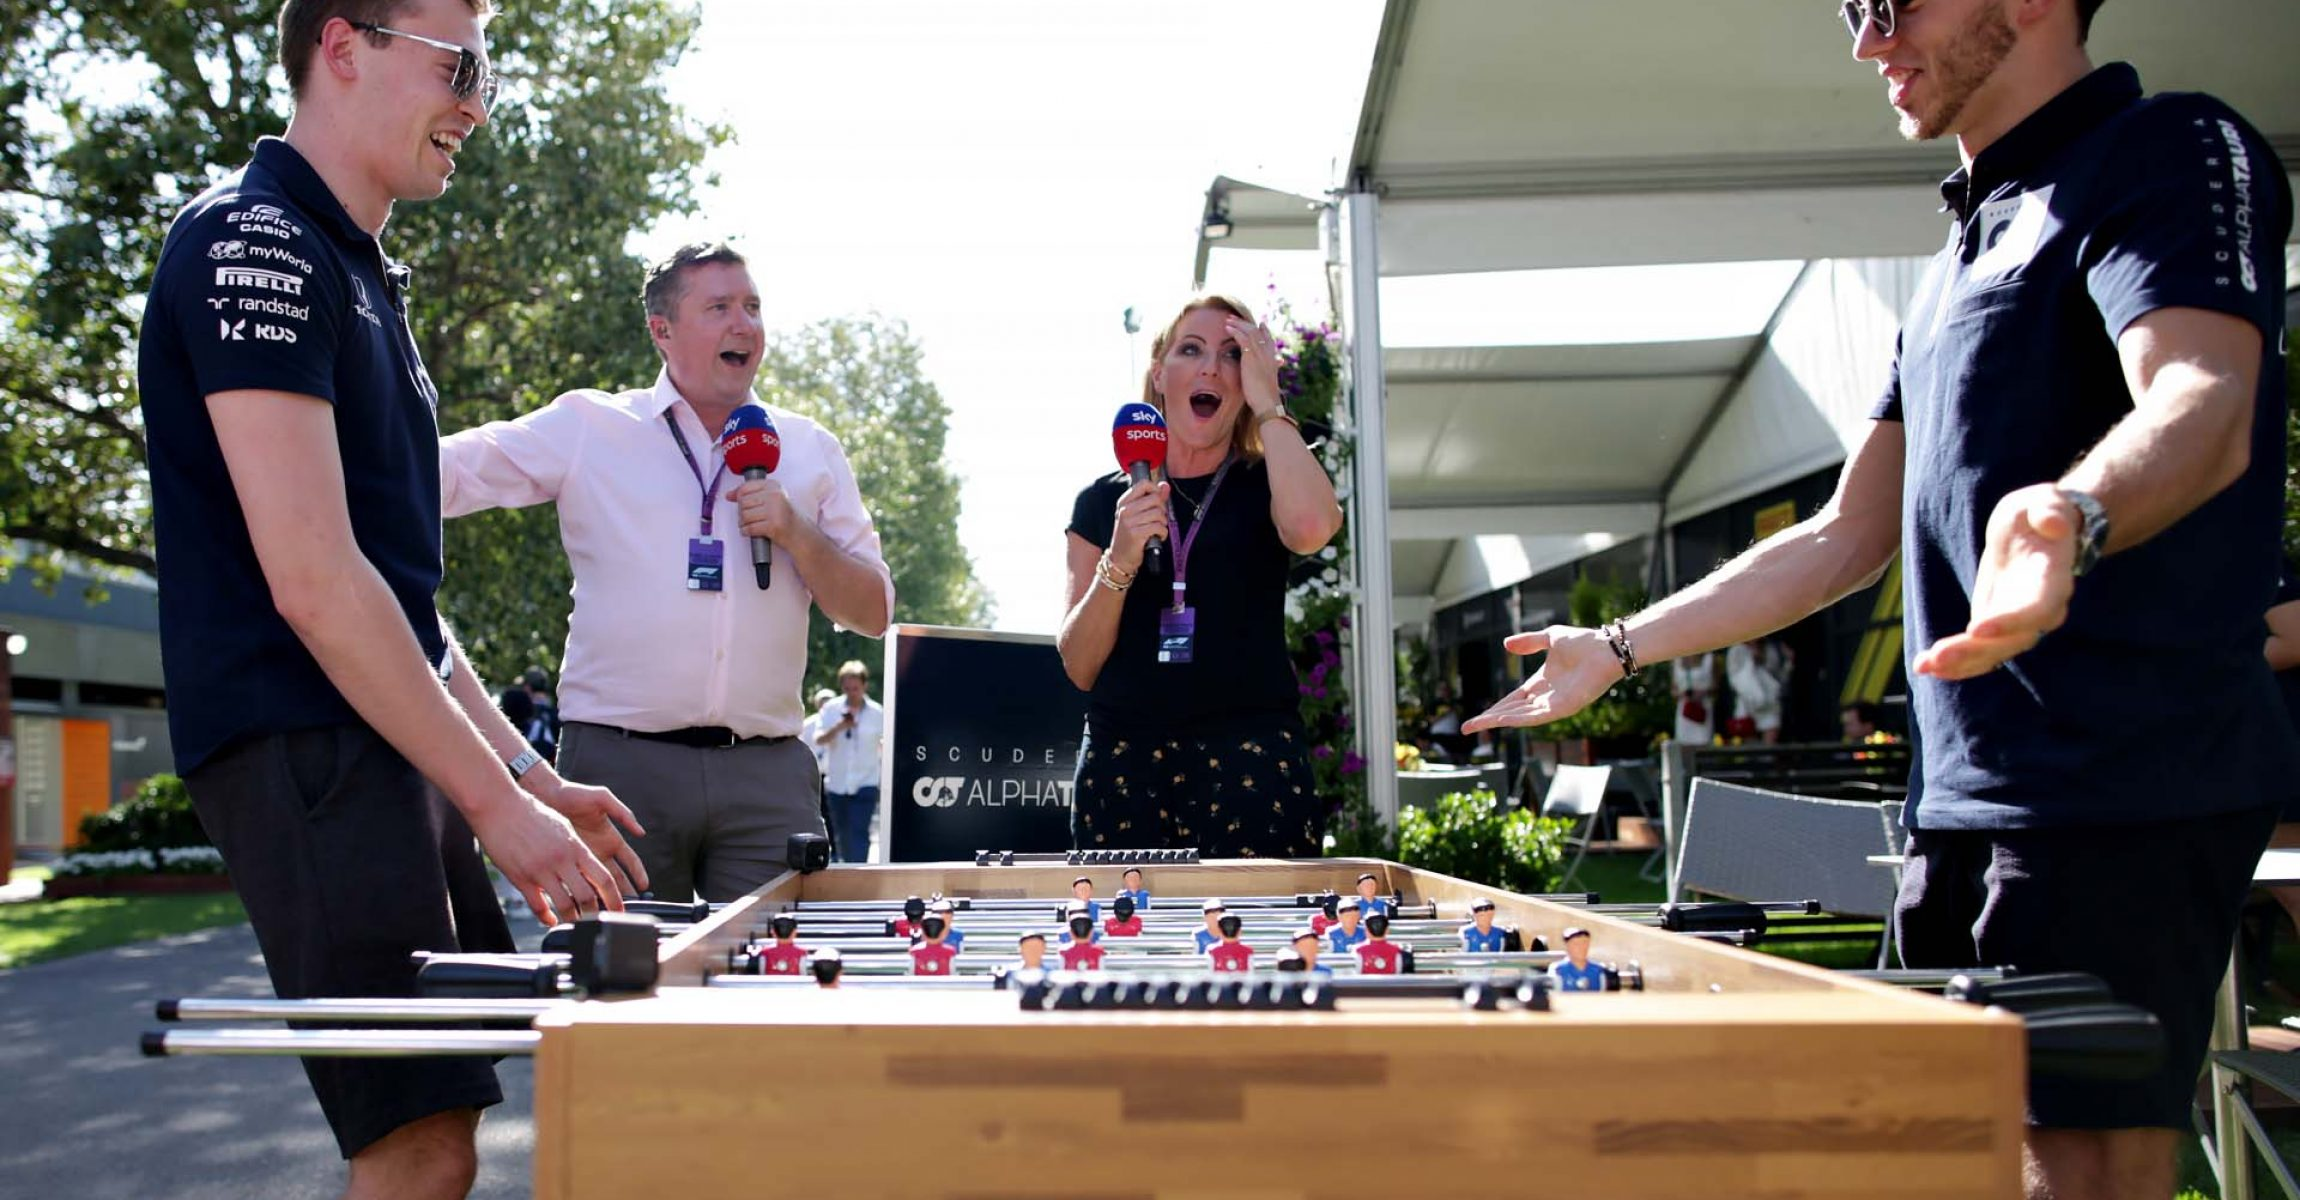 MELBOURNE, AUSTRALIA - MARCH 12: Pierre Gasly of France and Scuderia AlphaTauri and Daniil Kvyat of Russia and Scuderia AlphaTauri play table football in the Paddock during previews ahead of the F1 Grand Prix of Australia at Melbourne Grand Prix Circuit on March 12, 2020 in Melbourne, Australia. (Photo by Peter Fox/Getty Images) // Getty Images / Red Bull Content Pool // AP-23CJJSMZD1W11 // Usage for editorial use only //